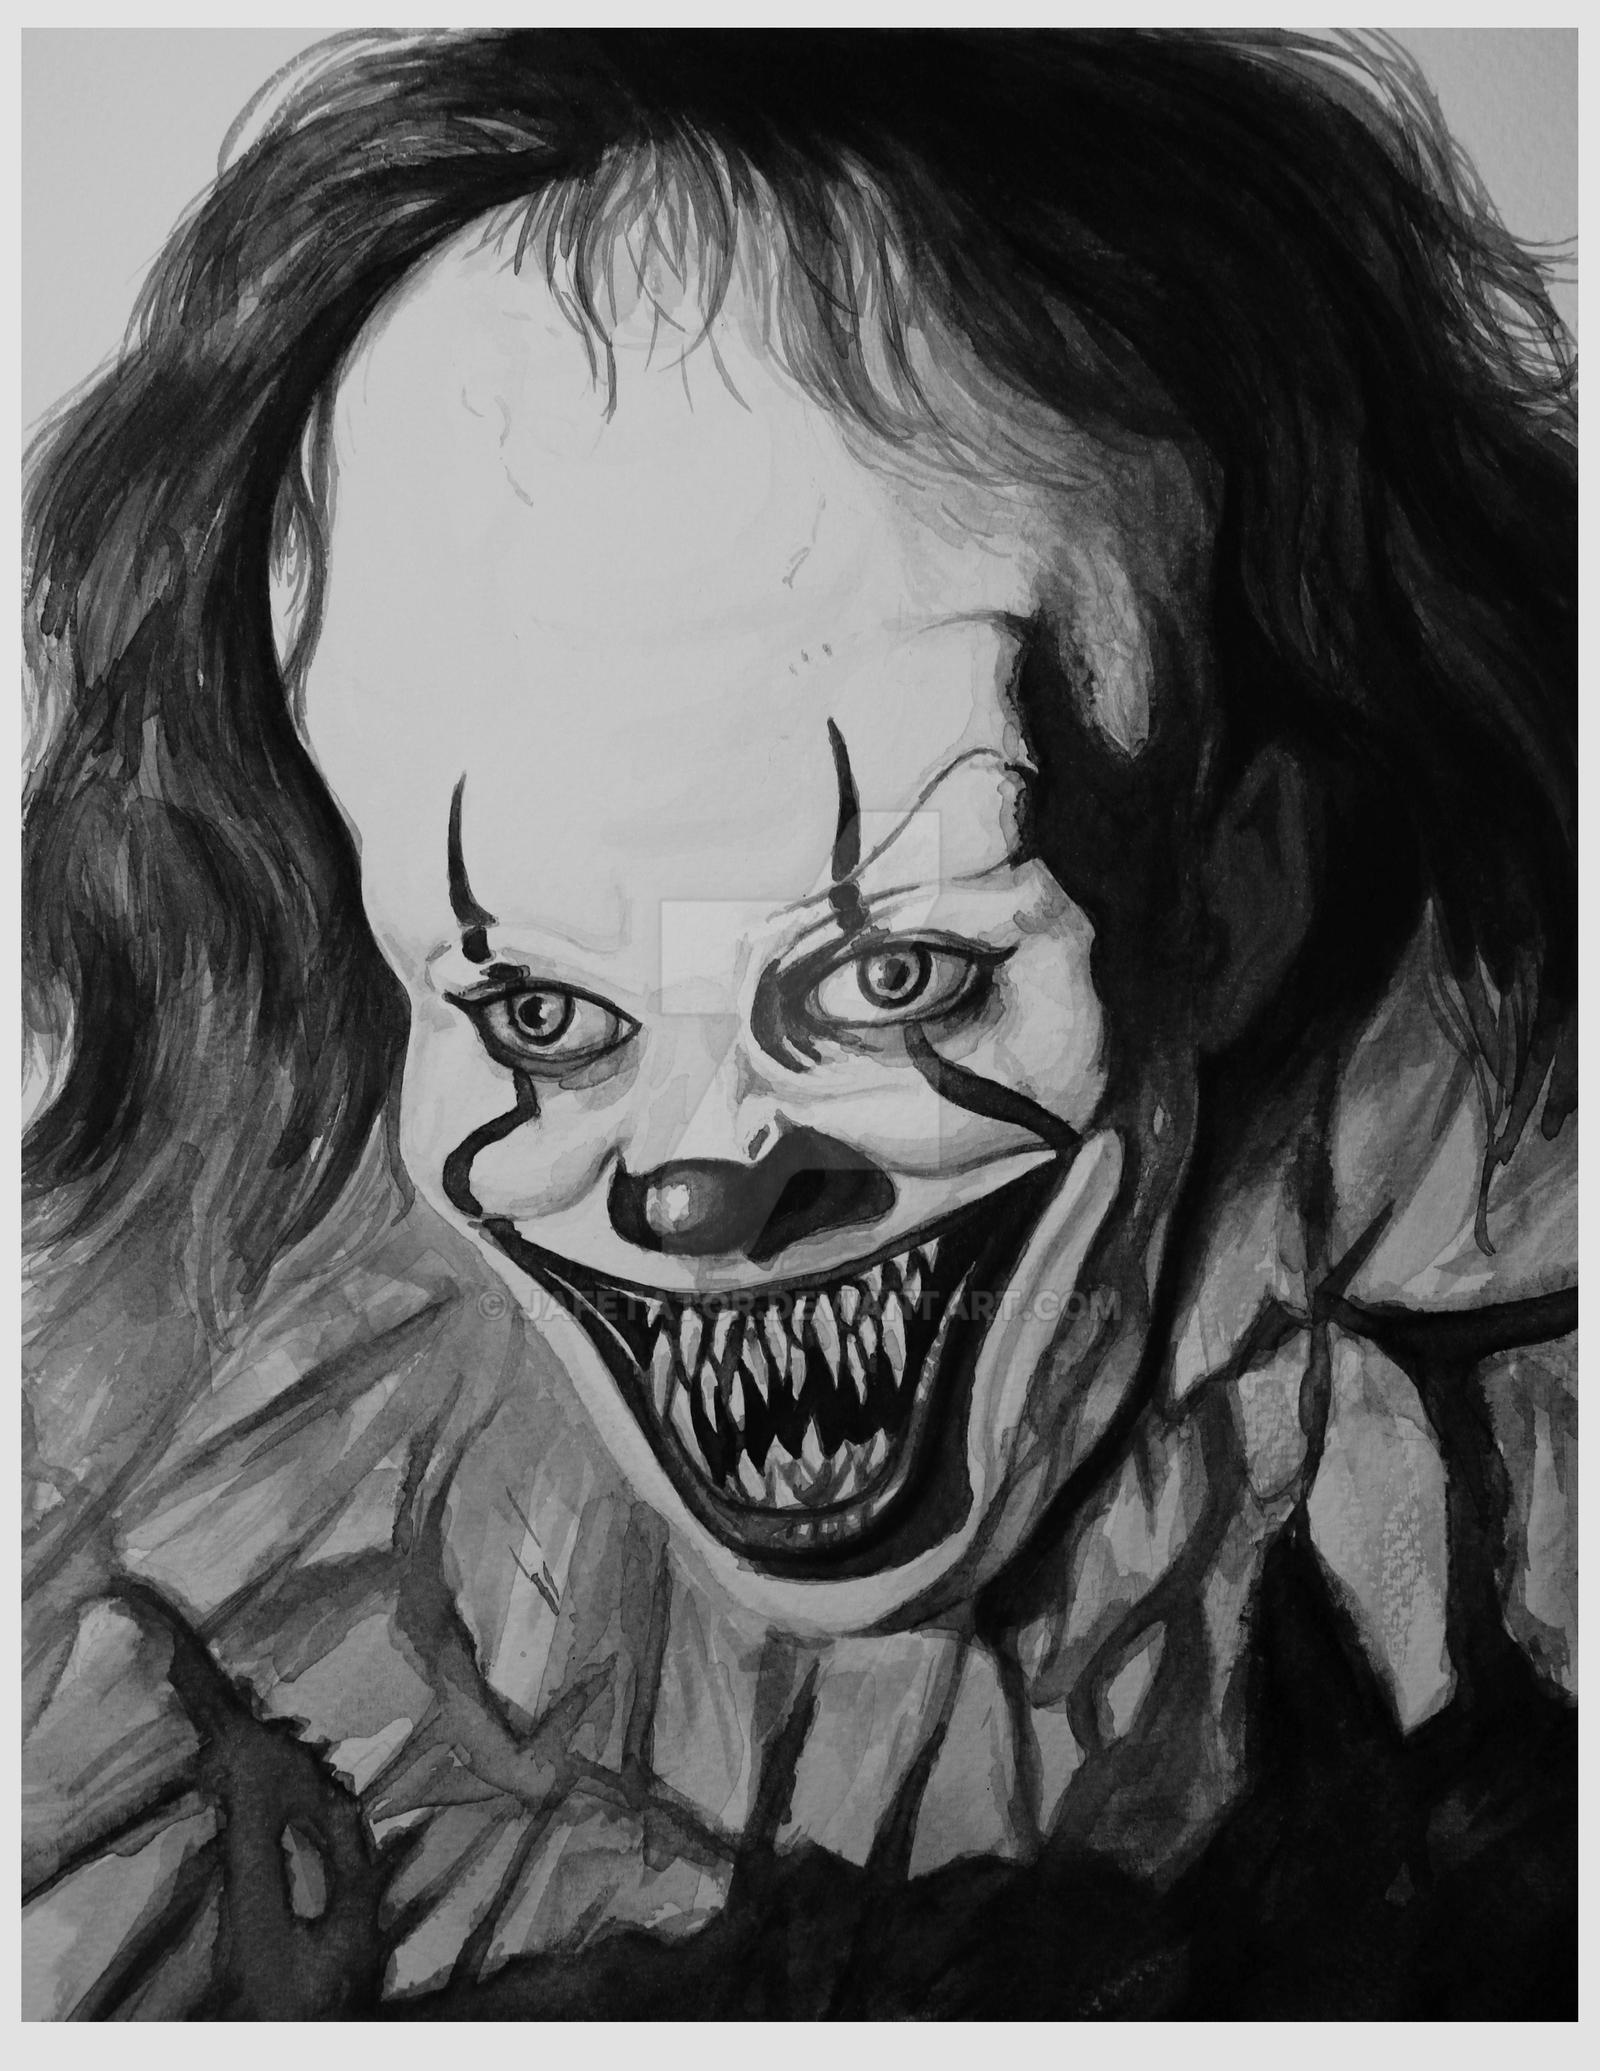 Pennywise From It (2017) - Portrait by Jafetator on DeviantArt